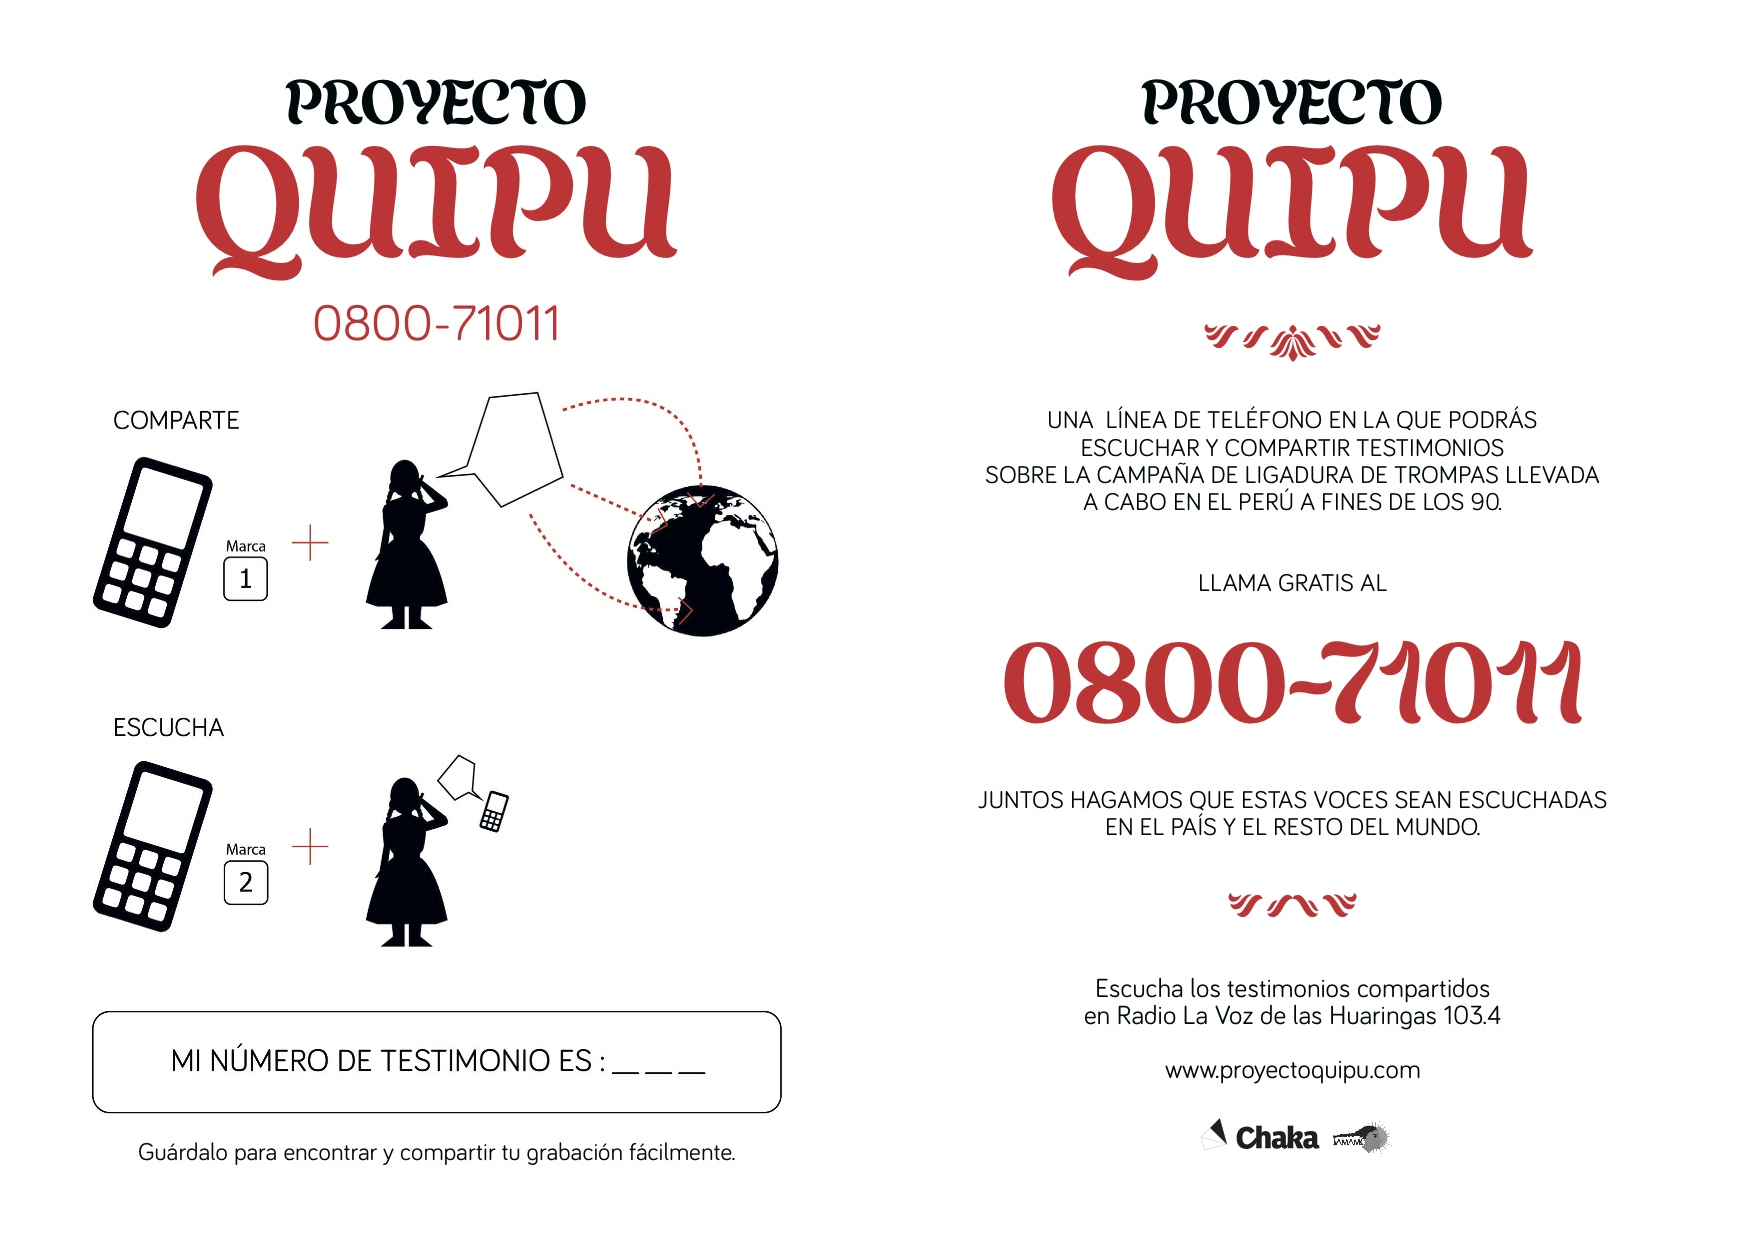 A brochure from the Quipu project advertising the program. Republished with permission.